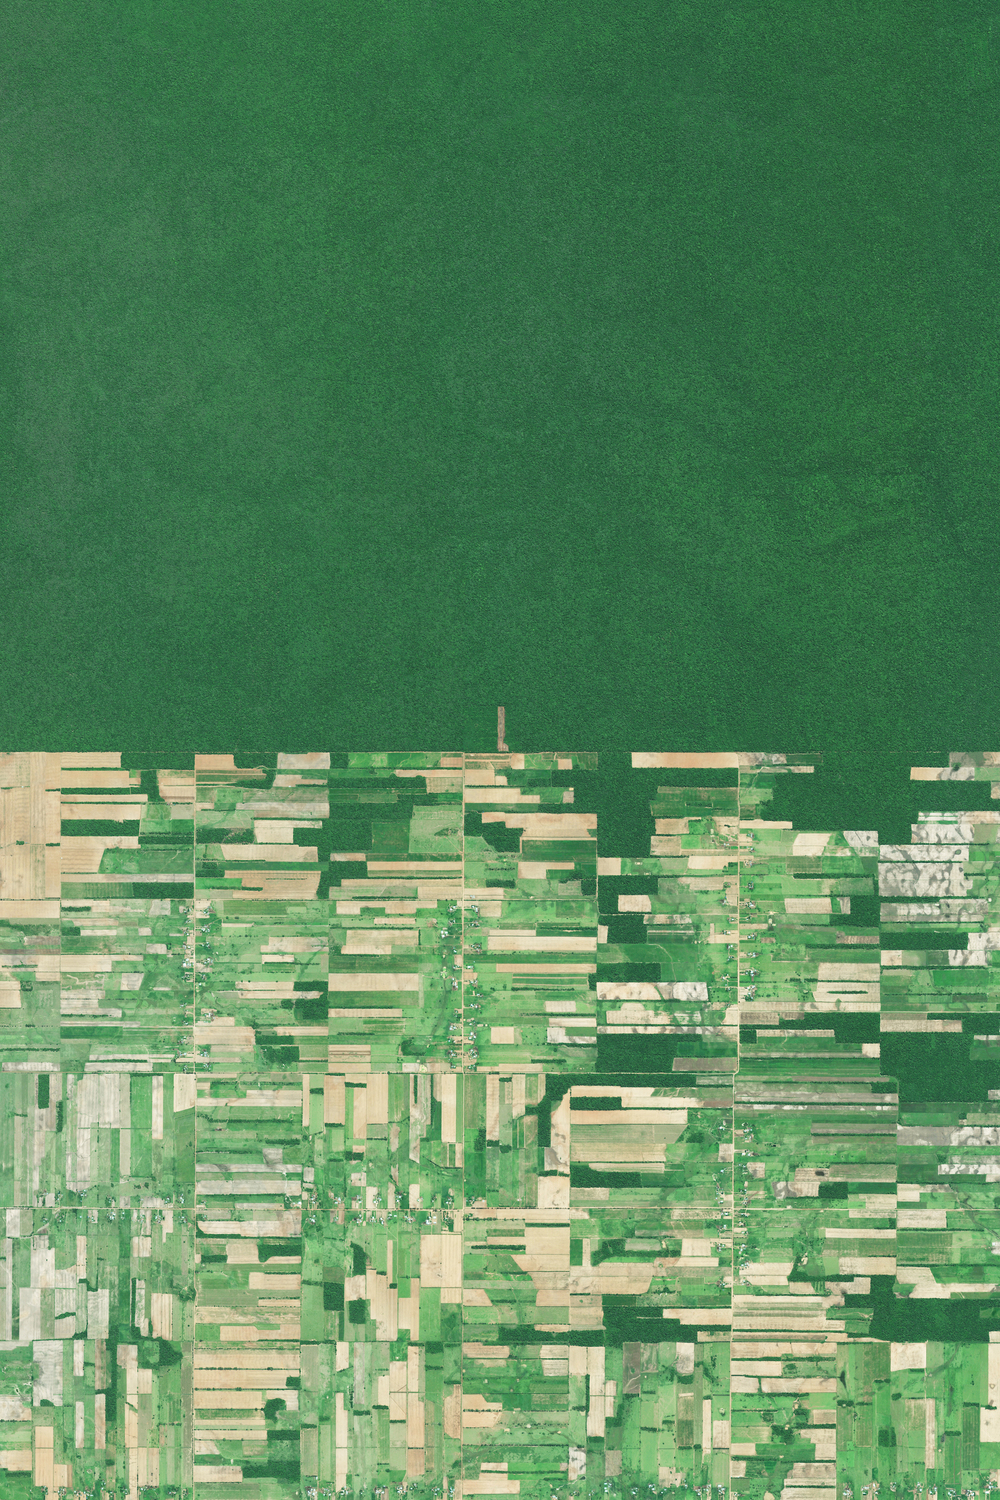 12/14/2015 Deforestation Santa Cruz, Bolivia -17.387750000°, -60.562130556°   Deforestation of the rainforest is visible in Santa Cruz, Bolivia. Deforestation in the country has primarily been driven by the expansion of mechanized agriculture and cattle ranching. This Overview highlights the country's struggle to expand food production in order to meet the needs of its growing population, and the sacrificial destruction of its forests that has taken place to do so. Deforestation rates have been stable though relatively high, at about 200,000 hectares a year.